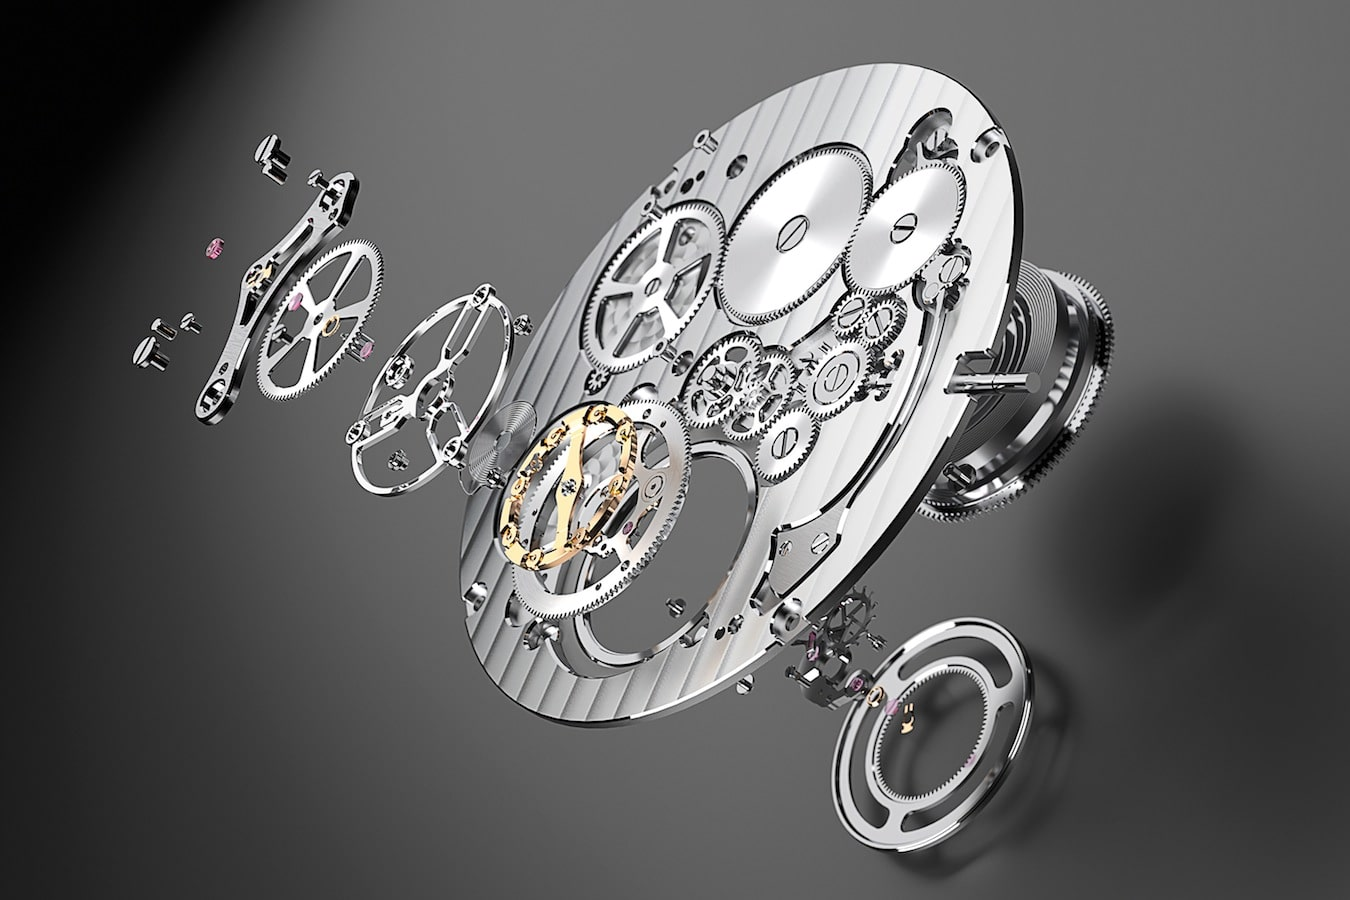 Bulgari: Finissimo Tourbillon-Kaliber